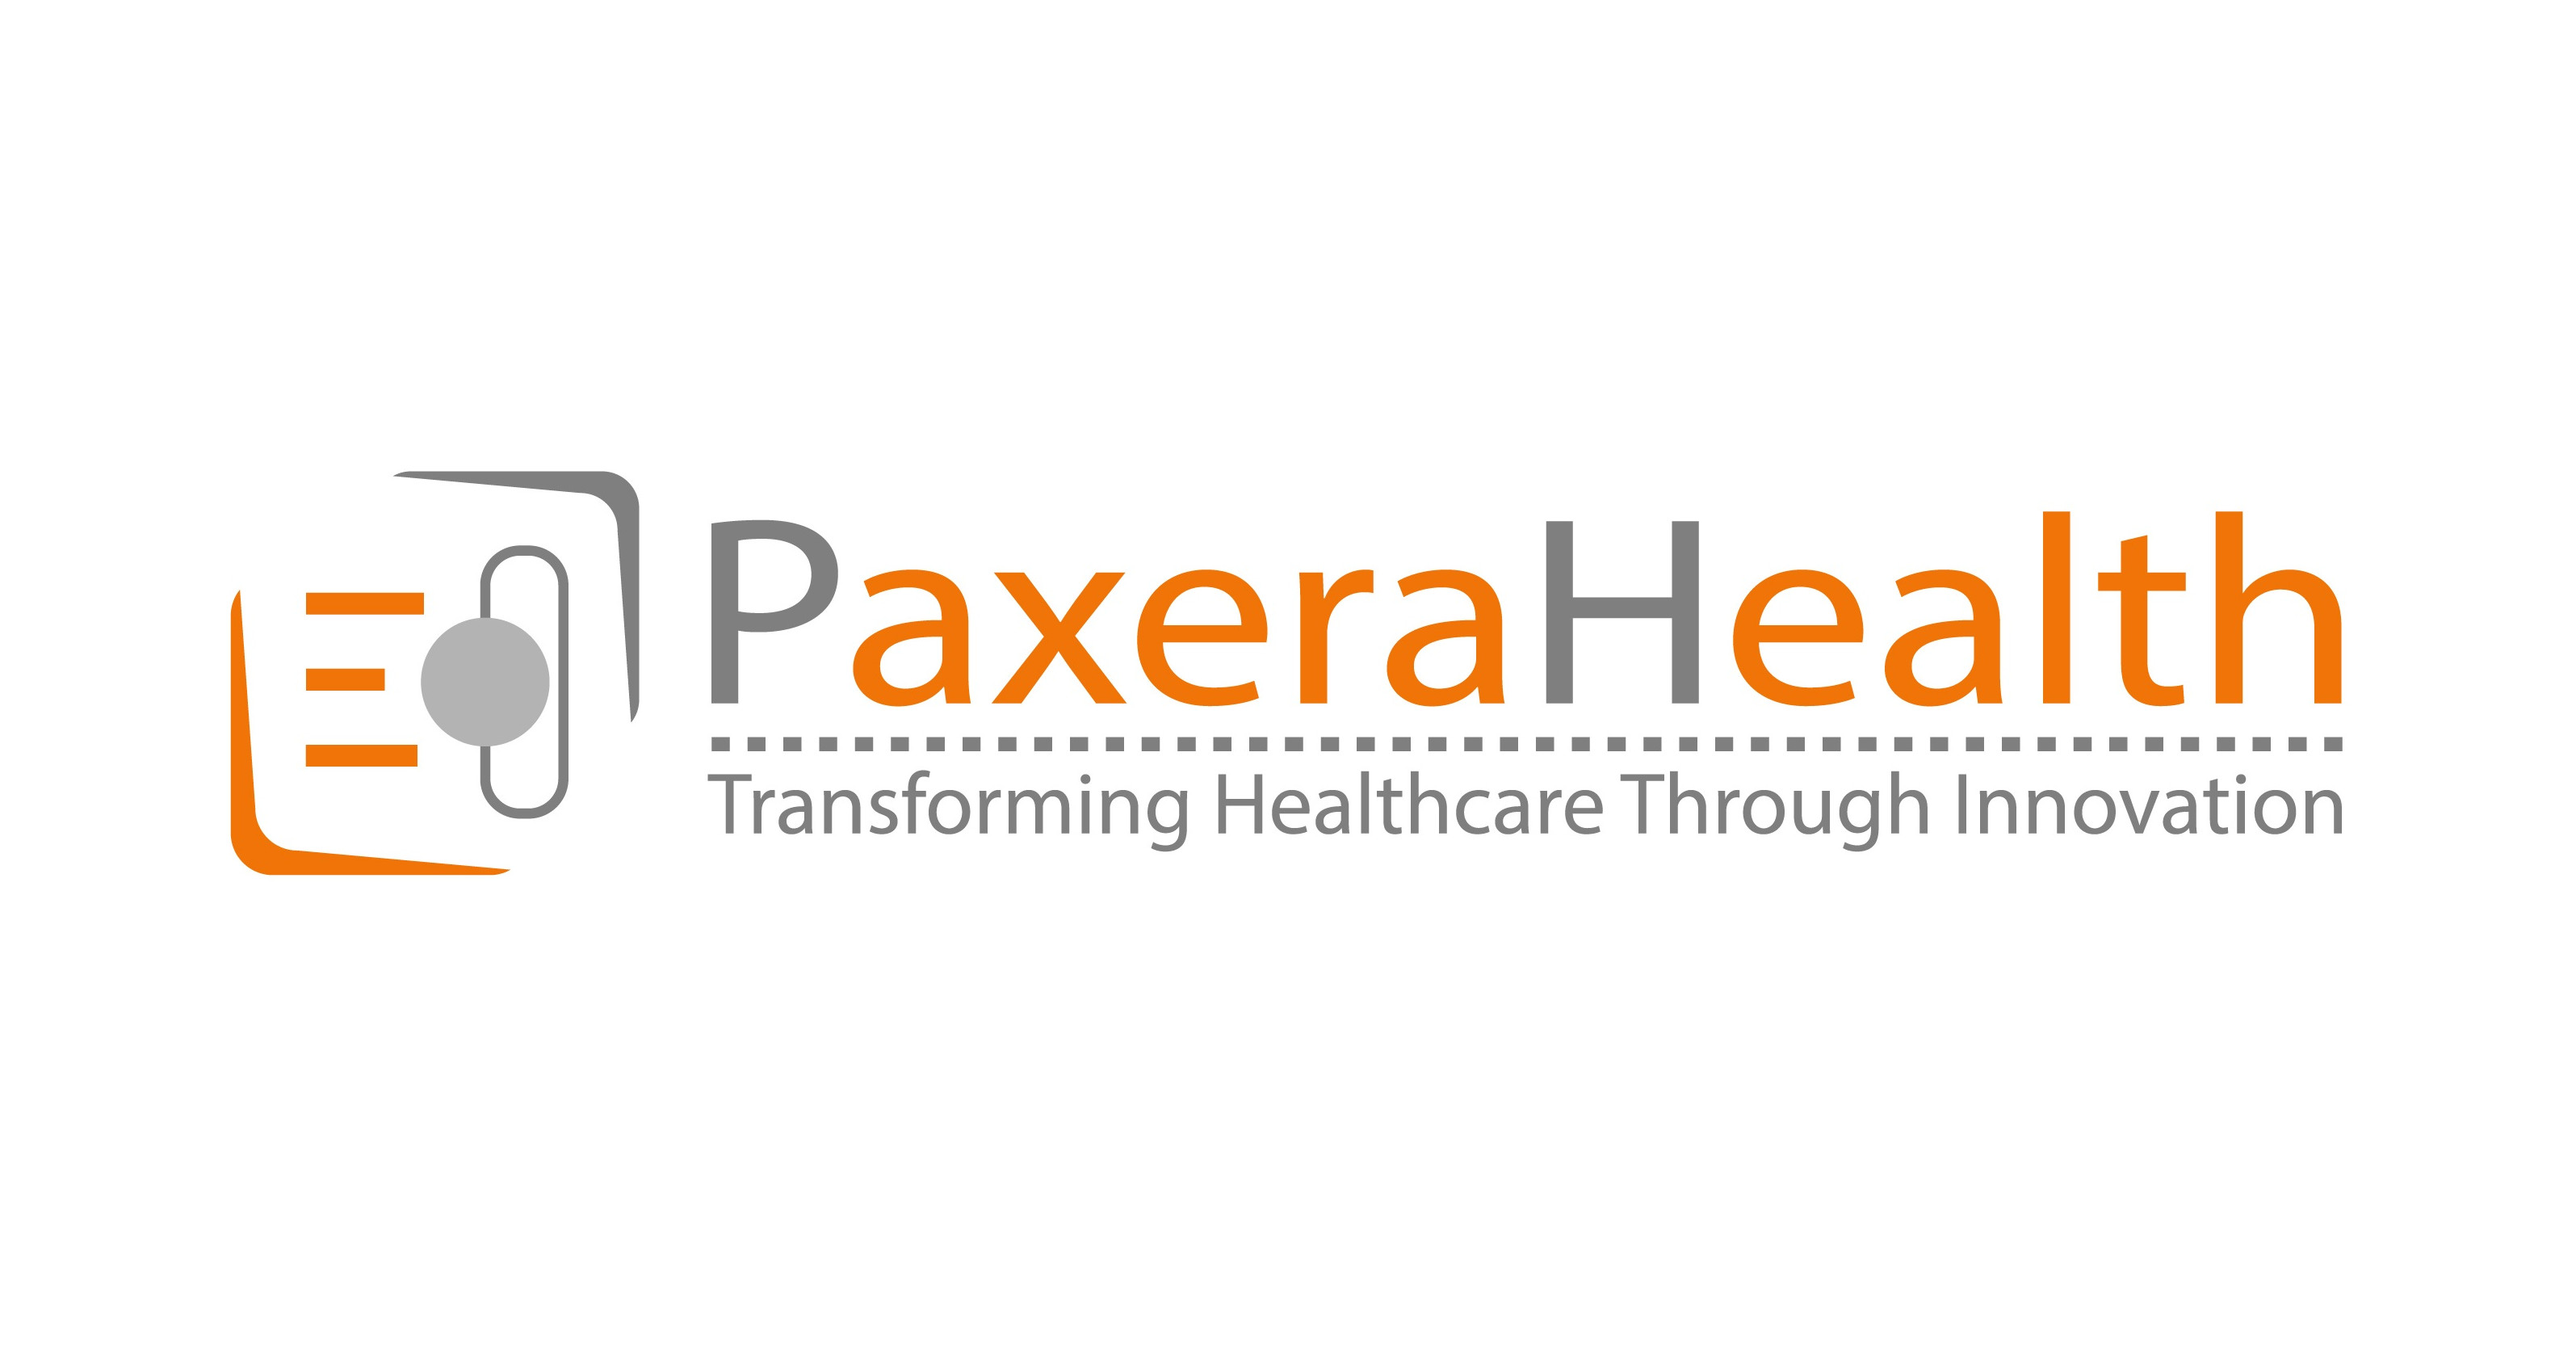 صورة Job: Clinical Application Specialist at Paxerahealth Corp in Cairo, Egypt